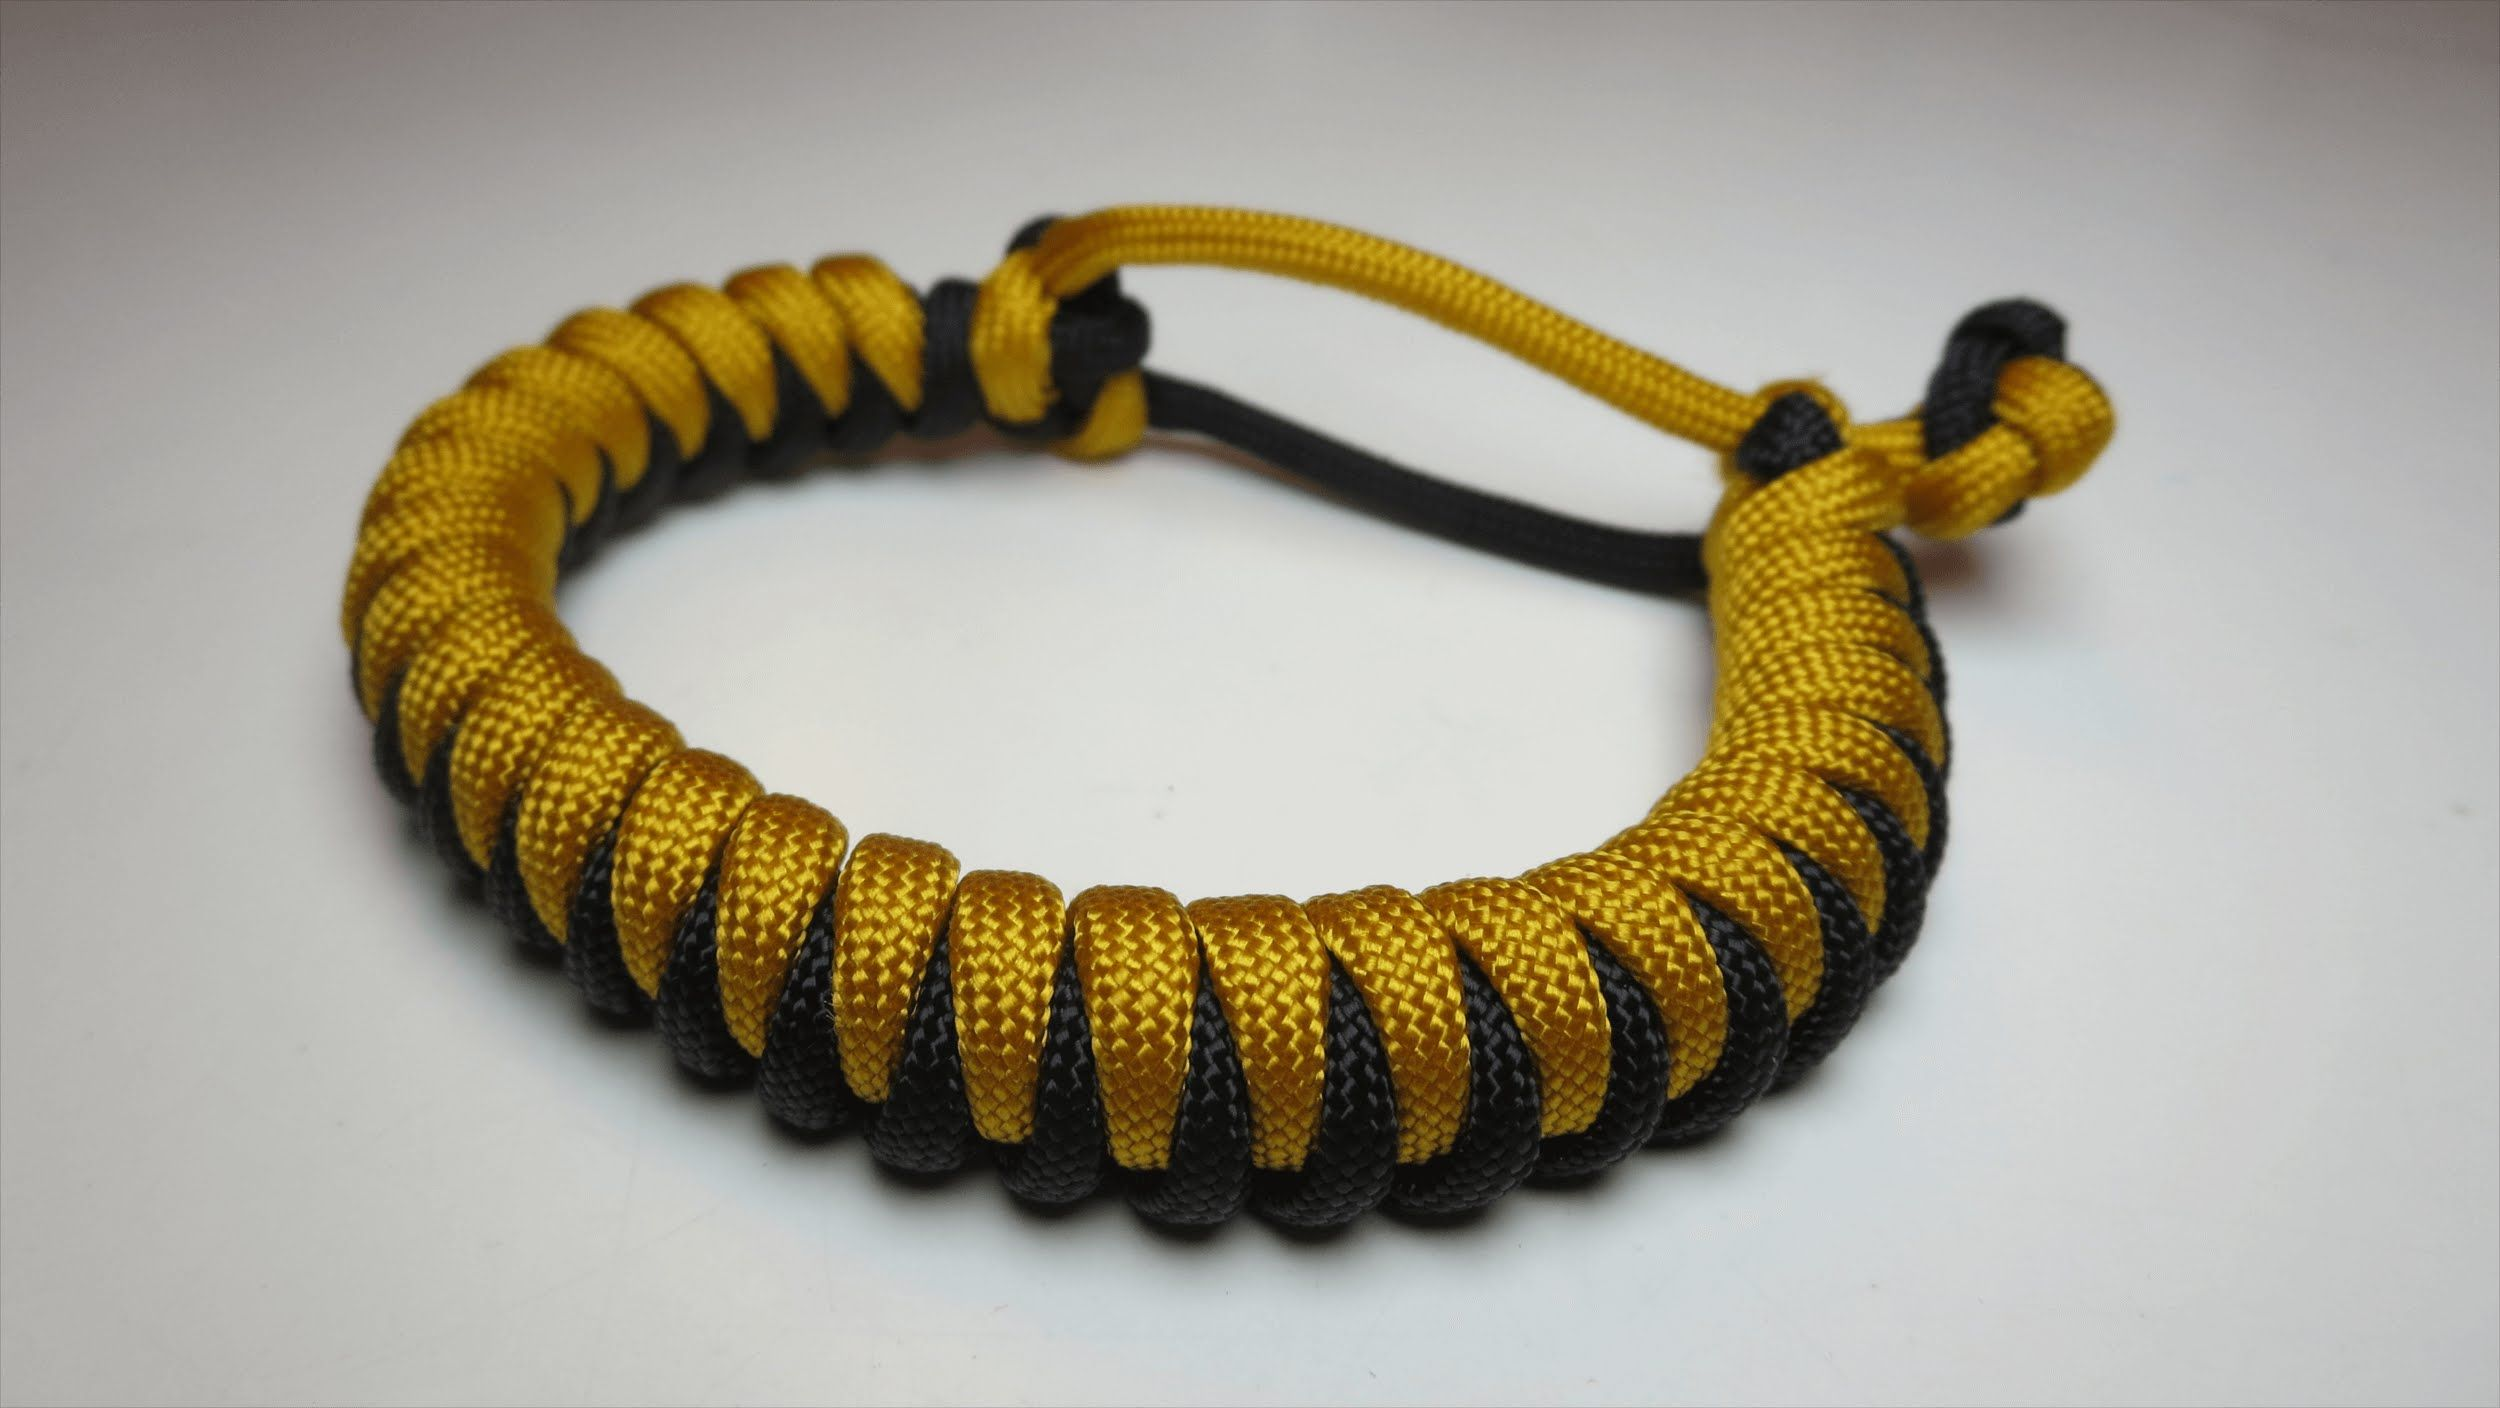 How To Make A Cork Paracord Bracelet Mad Max No Buckle Needed